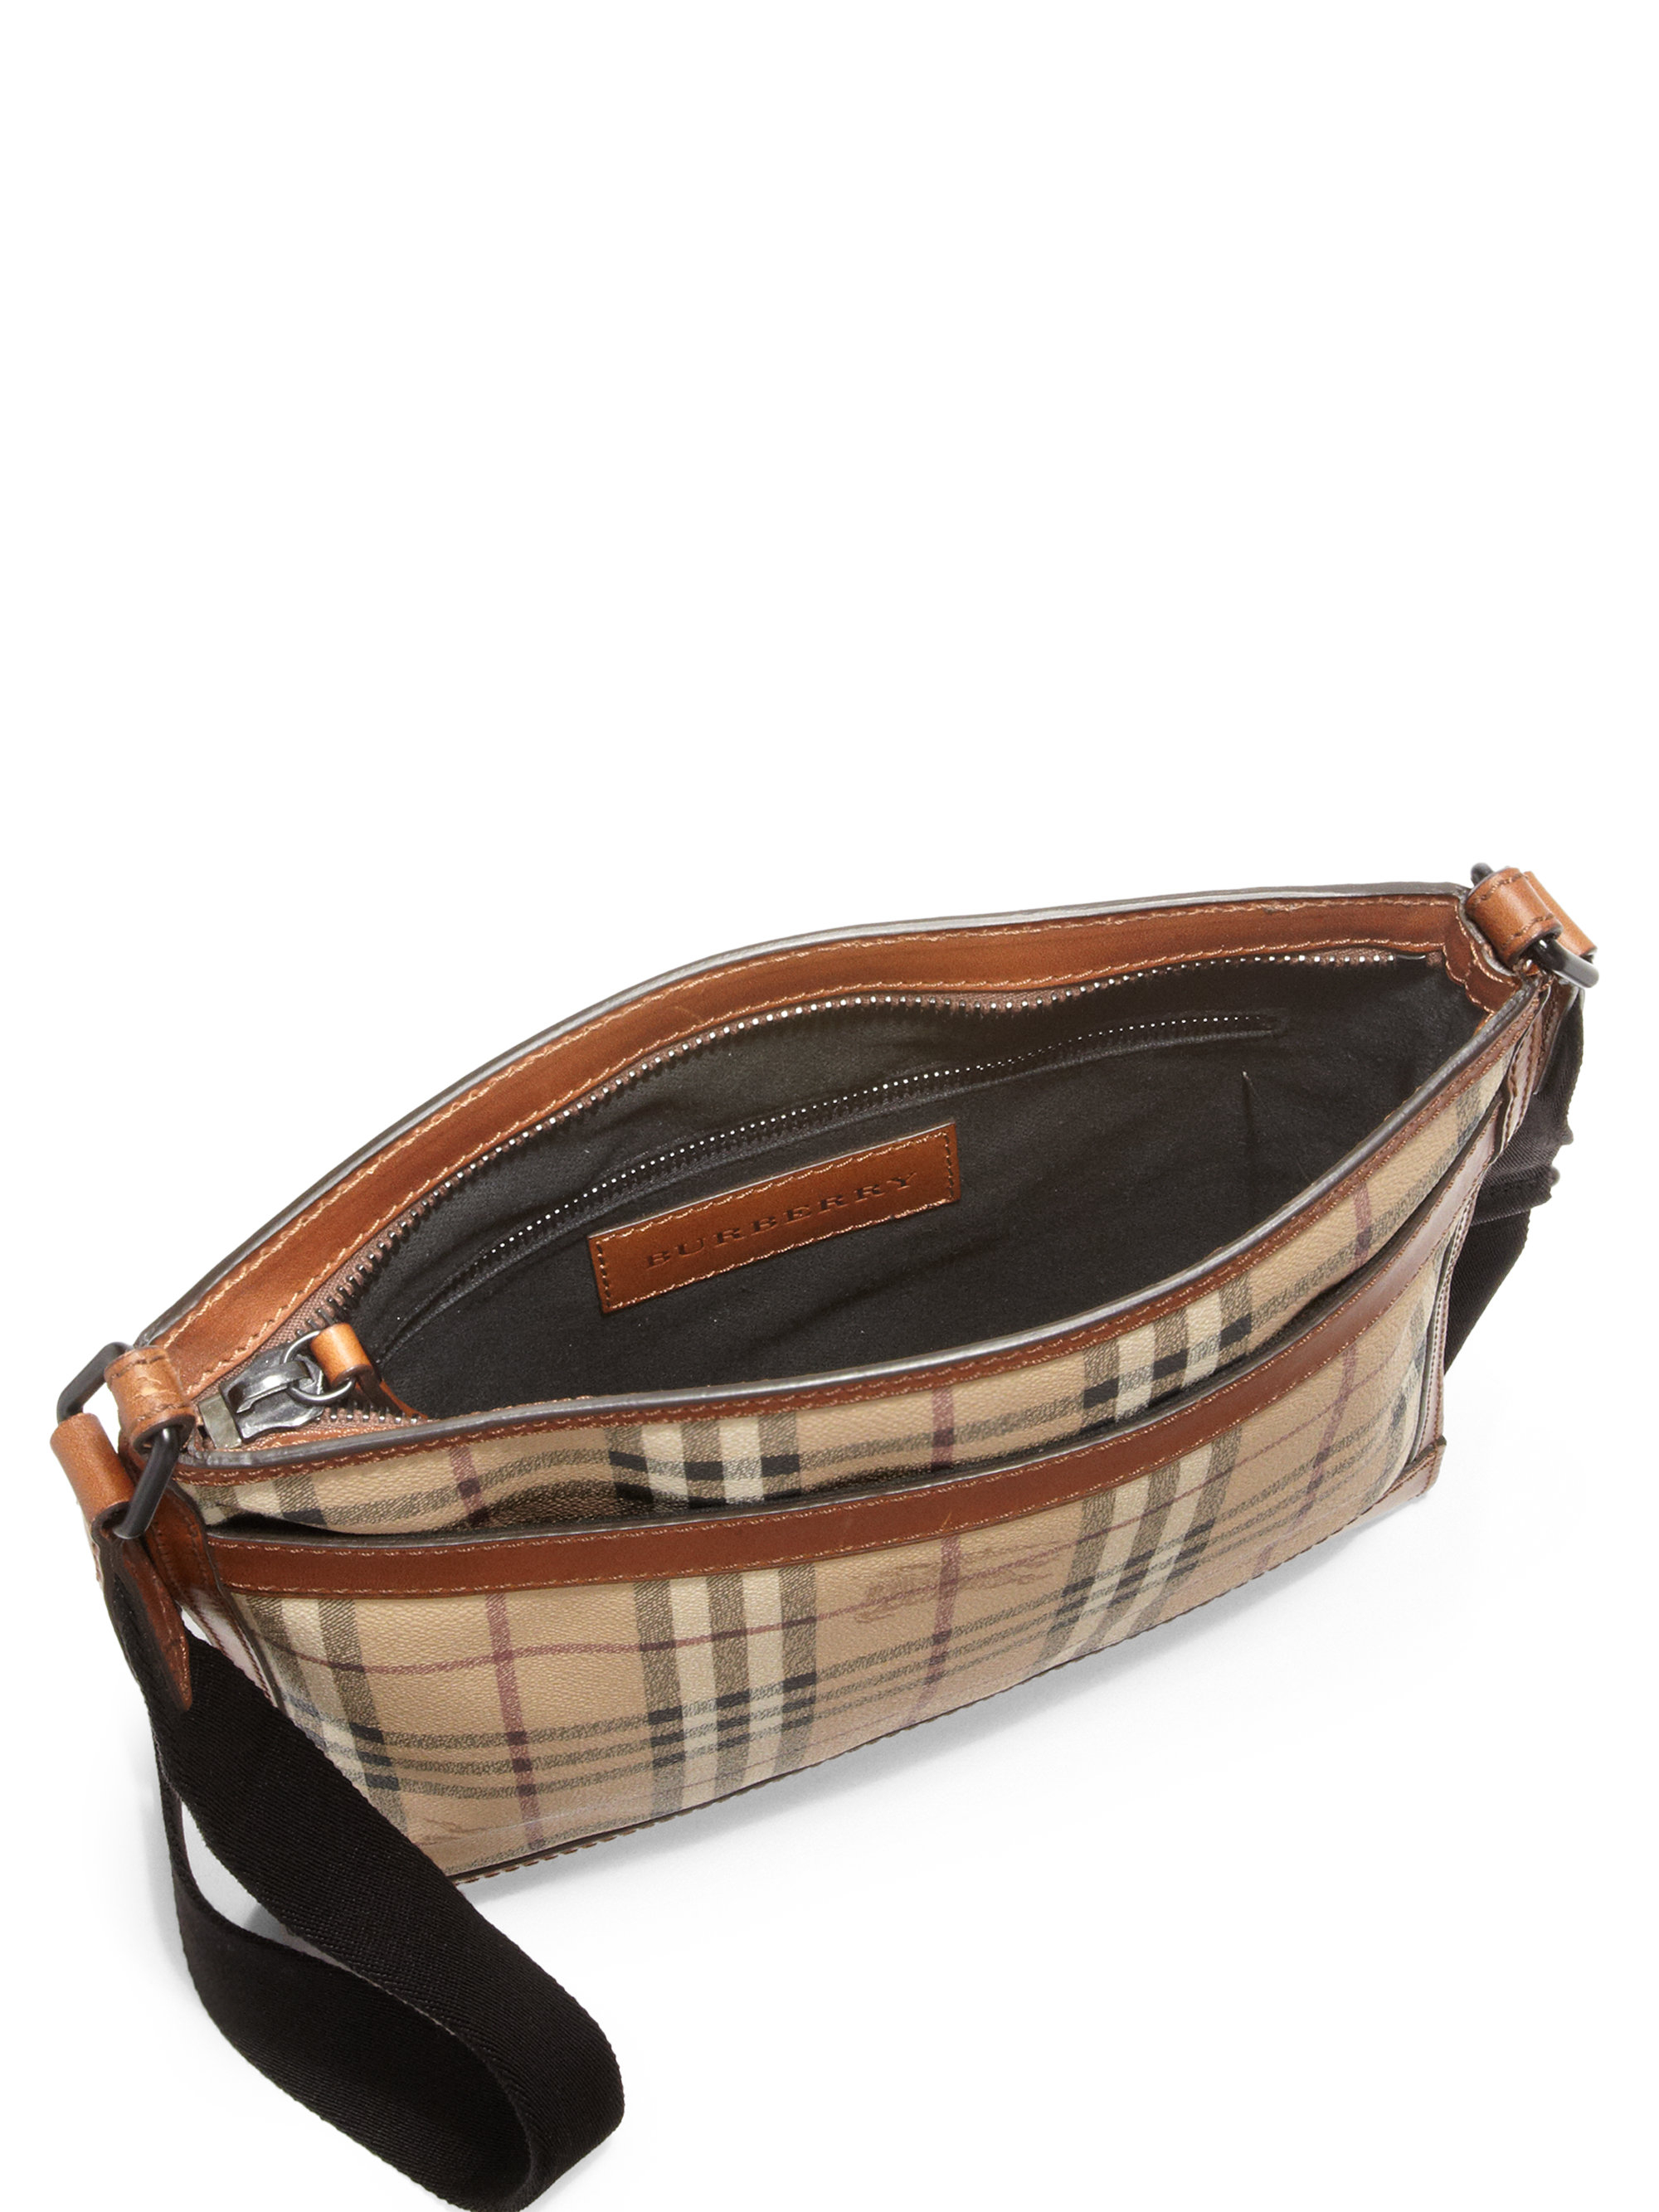 2bd051a3975 Lyst - Burberry Crossbody Messenger Bag in Natural for Men